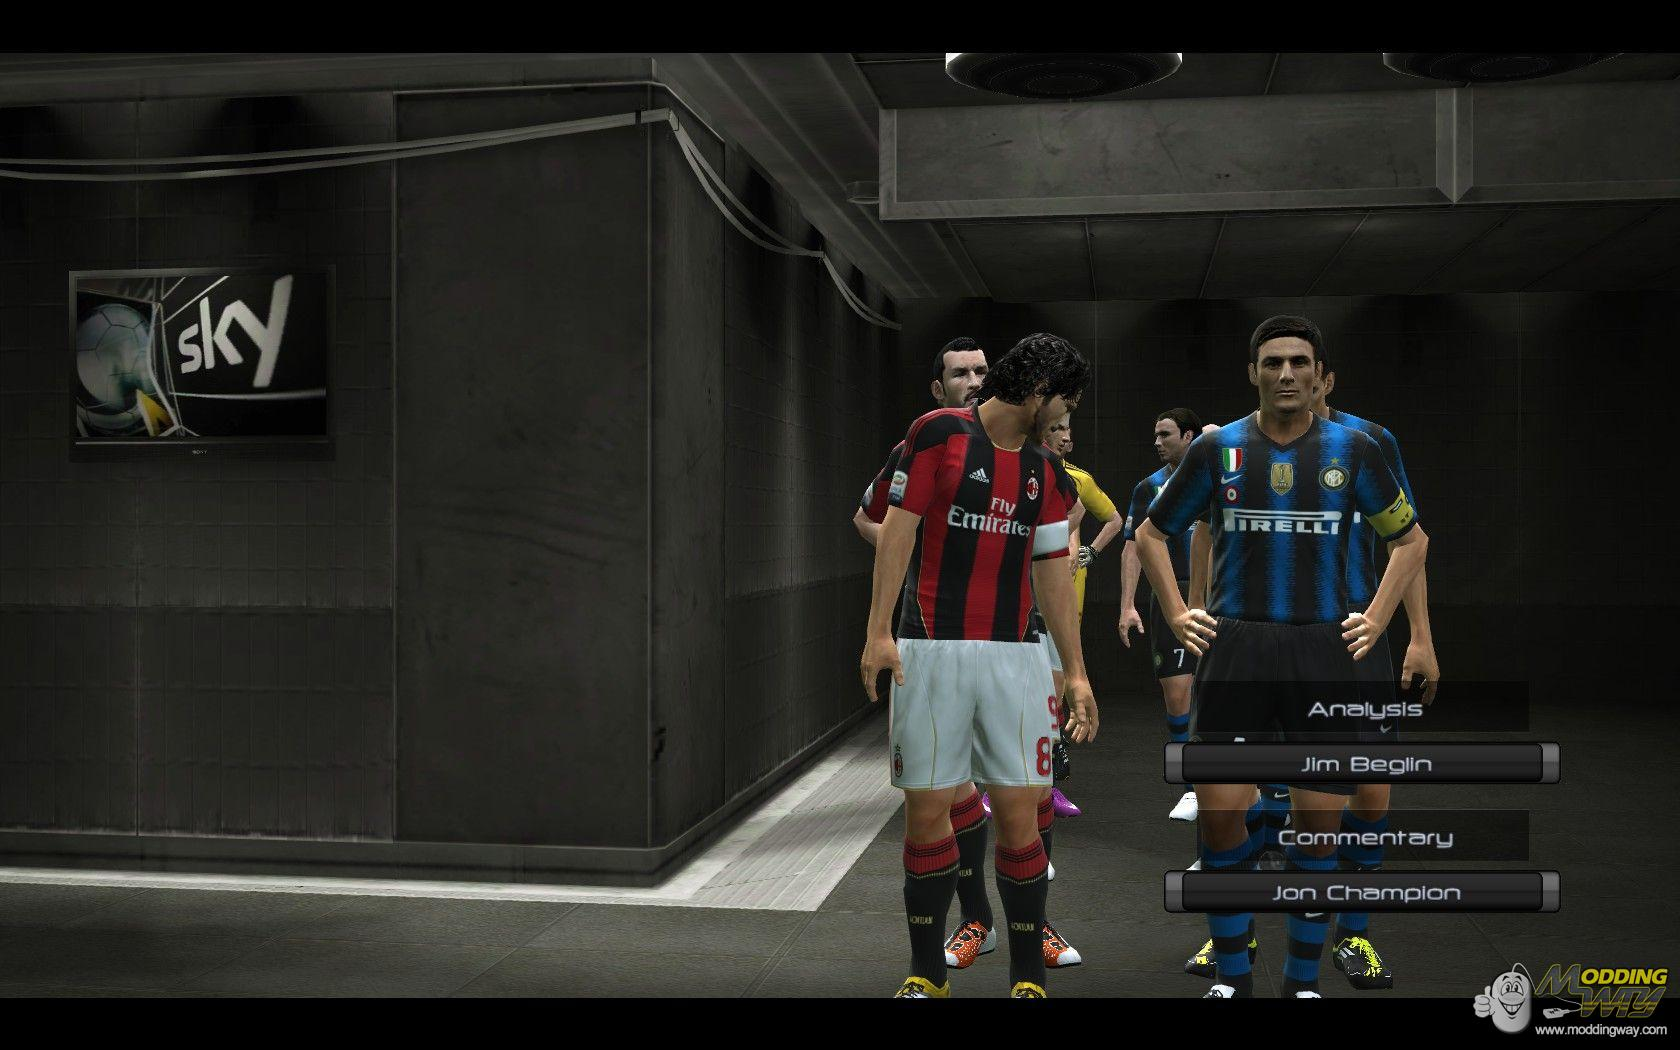 Pes 2011 patch 2019 android offline 50mb new kits logo & transfers.